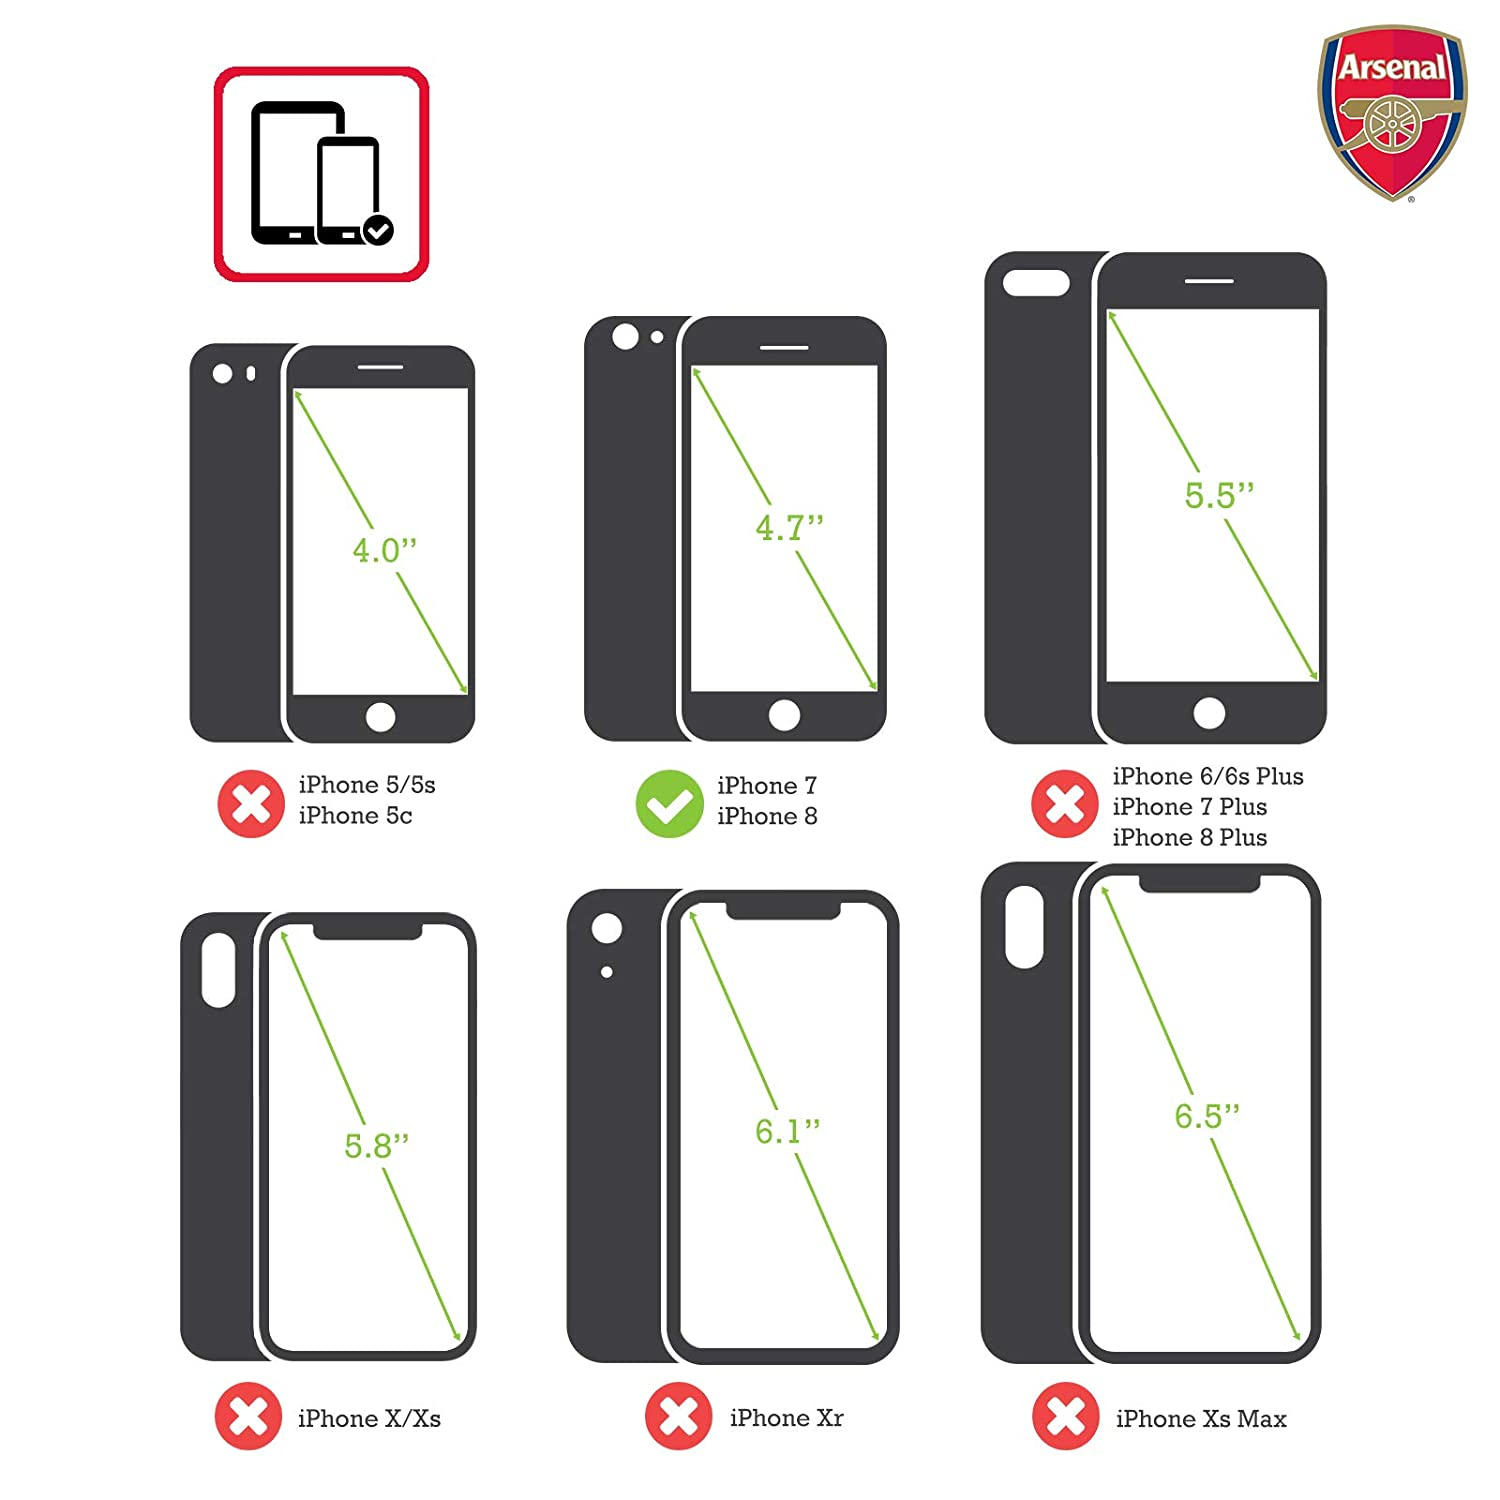 a646530e414 Amazon.com: Official Arsenal FC Fade 2016/17 Crest Hybrid Case for iPhone 7  / iPhone 8: Cell Phones & Accessories